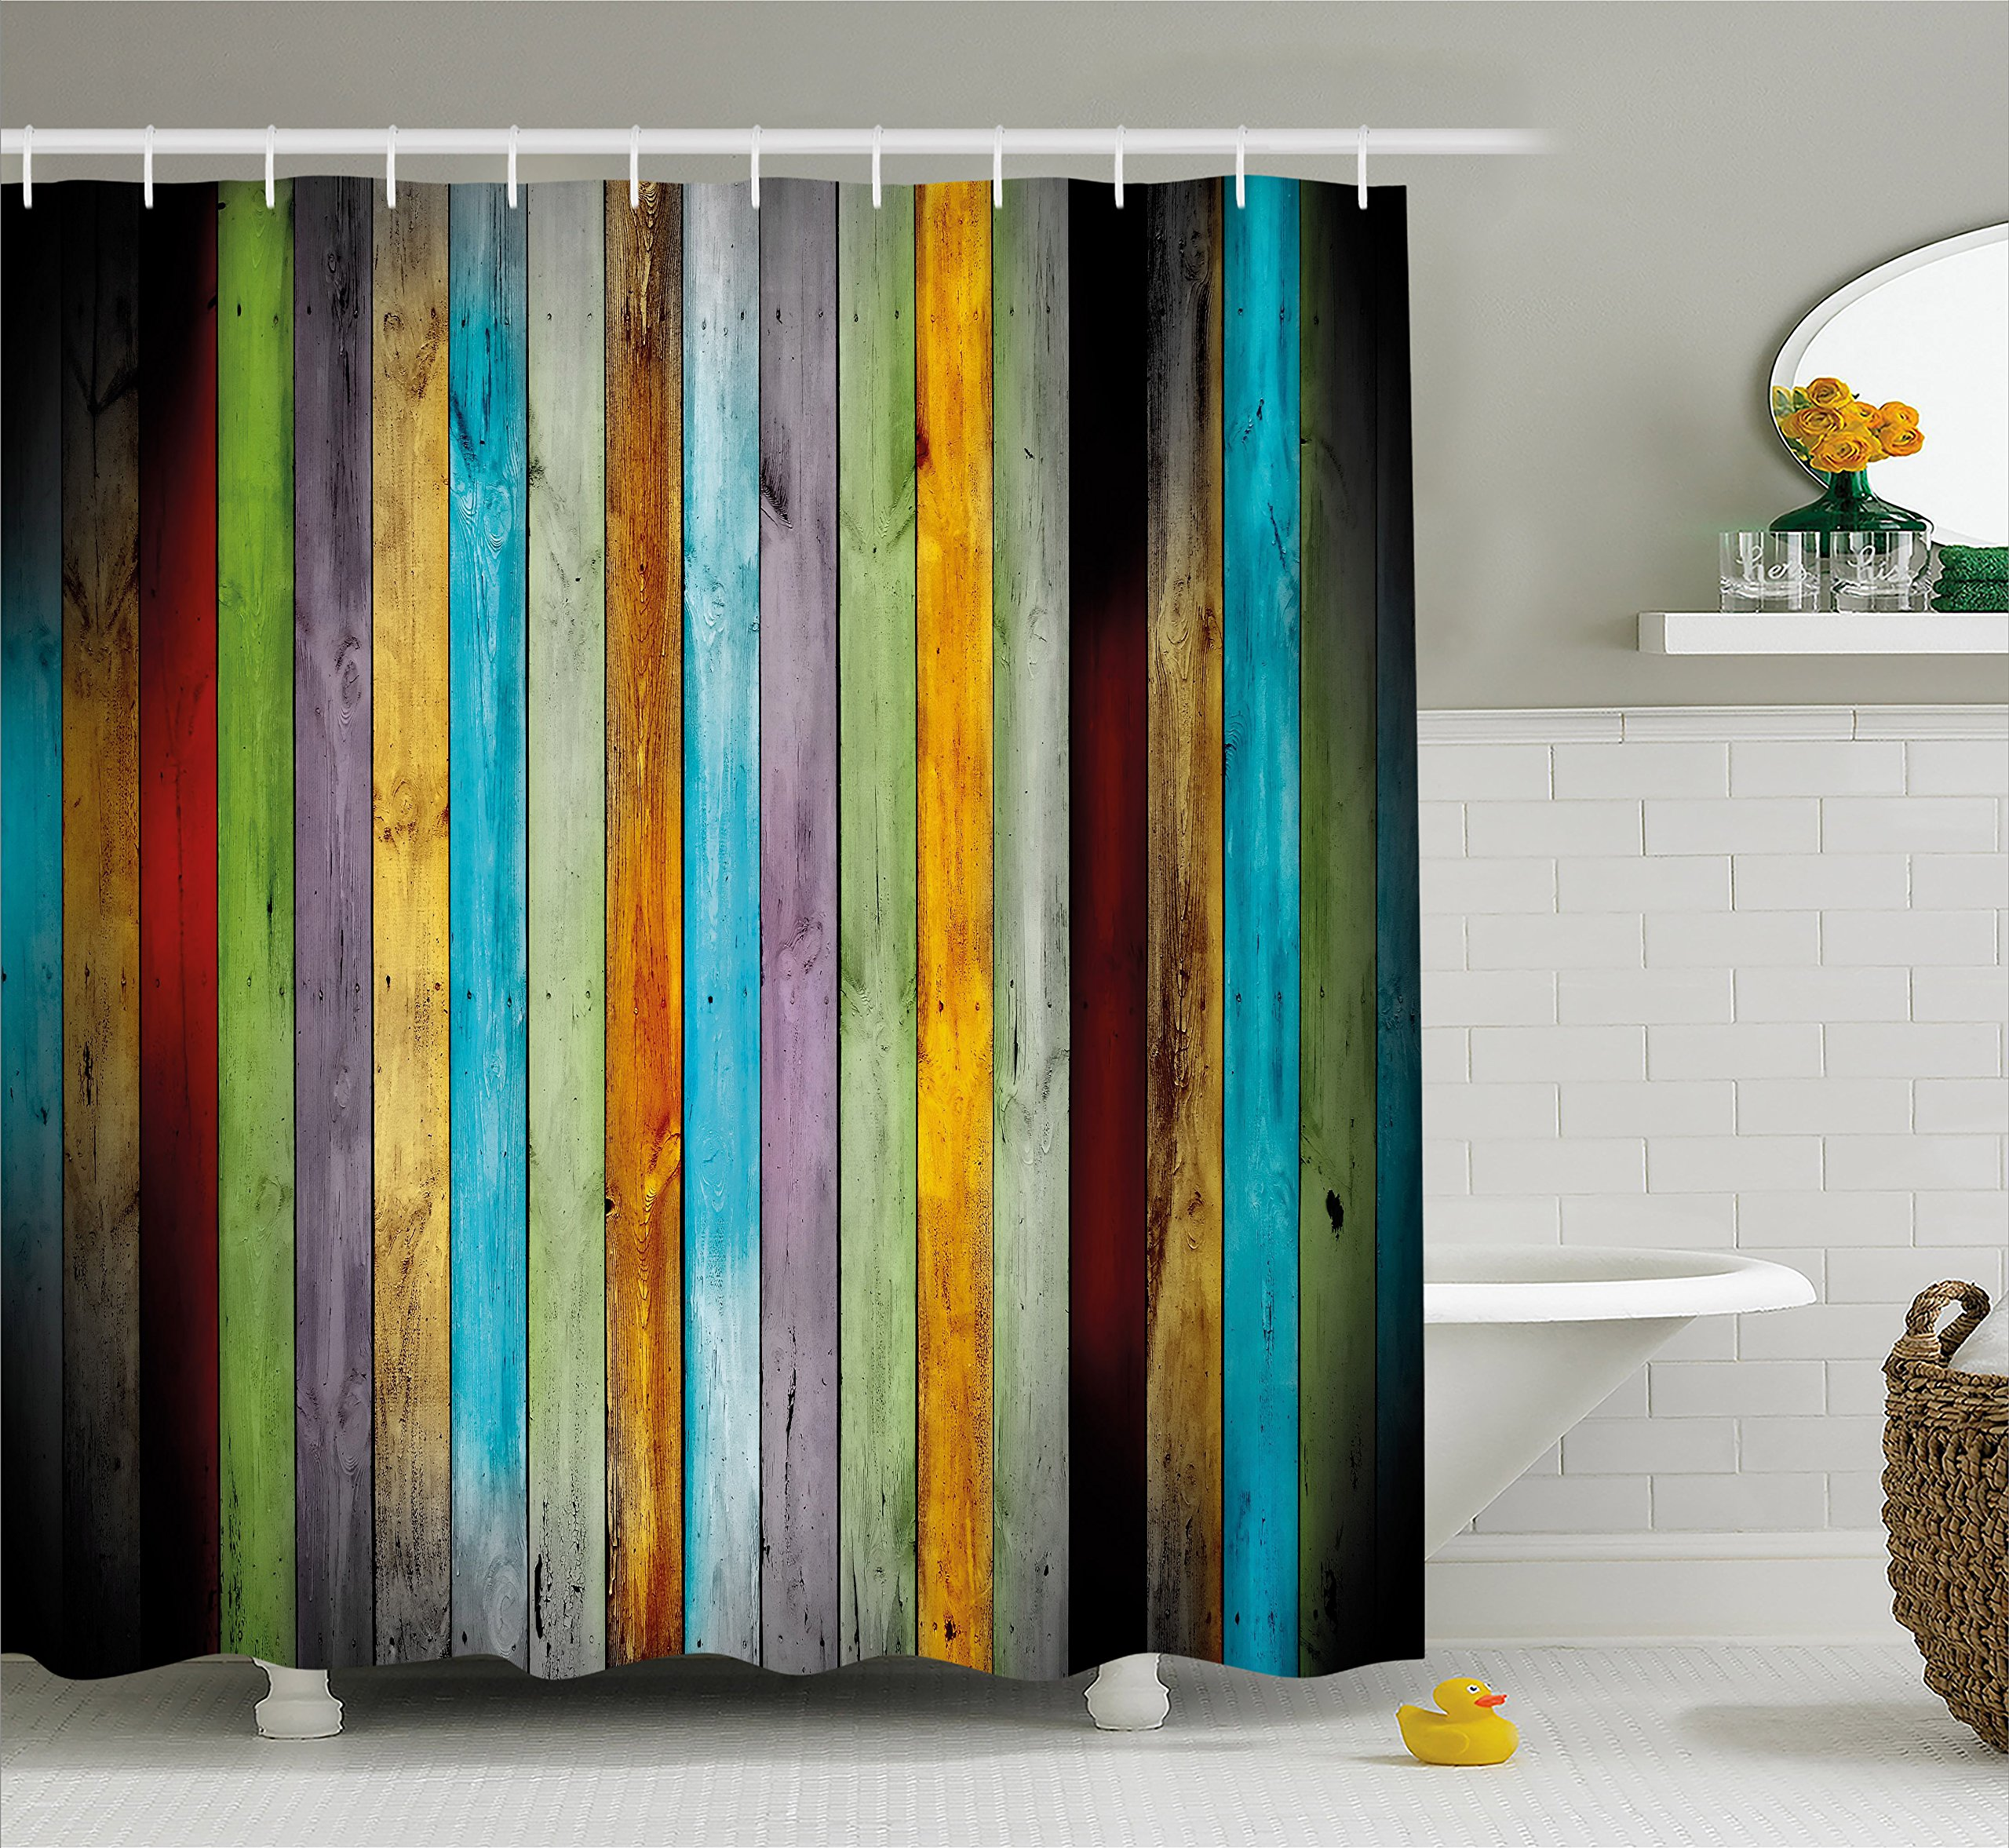 Lunarable Colorful Shower Curtain by, Vertical Wood Planks in Different Colors Carpentry Oak Timber Rustic Country Life, Fabric Bathroom Decor Set with Hooks, 84 Inches Extra Long, Multicolor